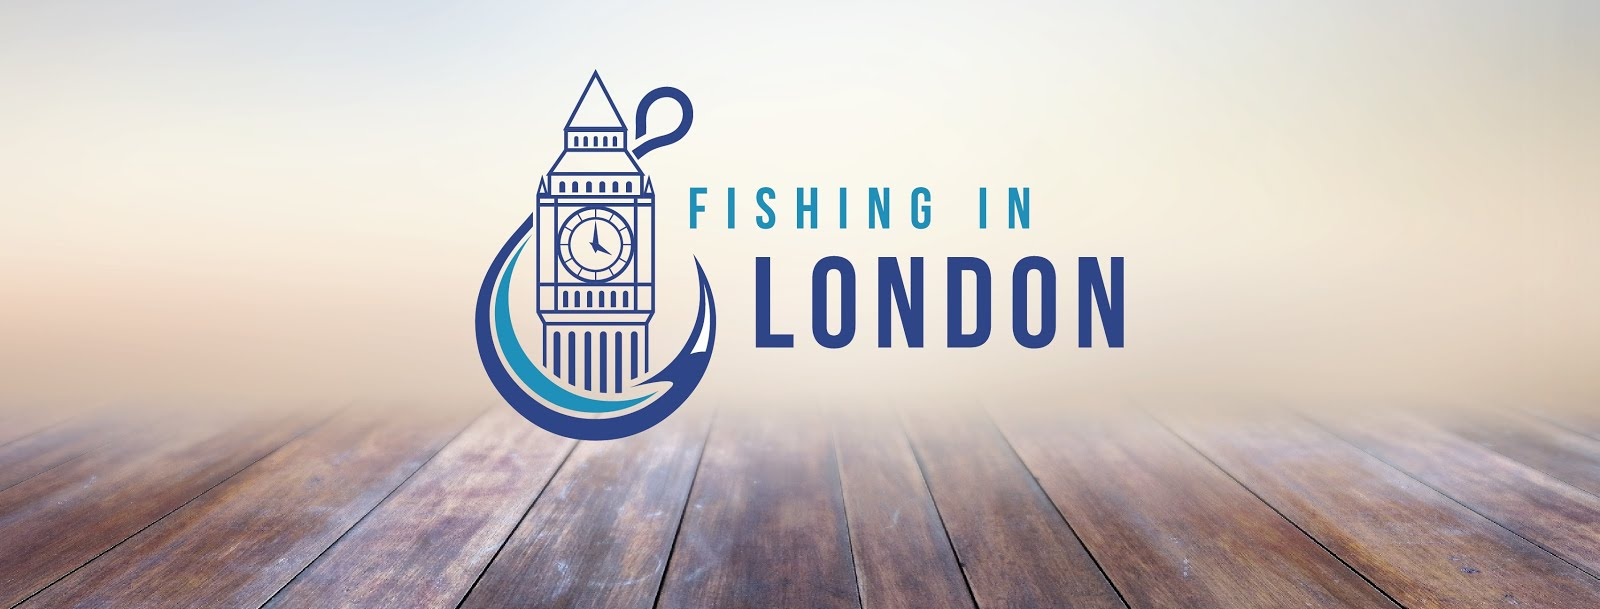 FISHING IN LONDON